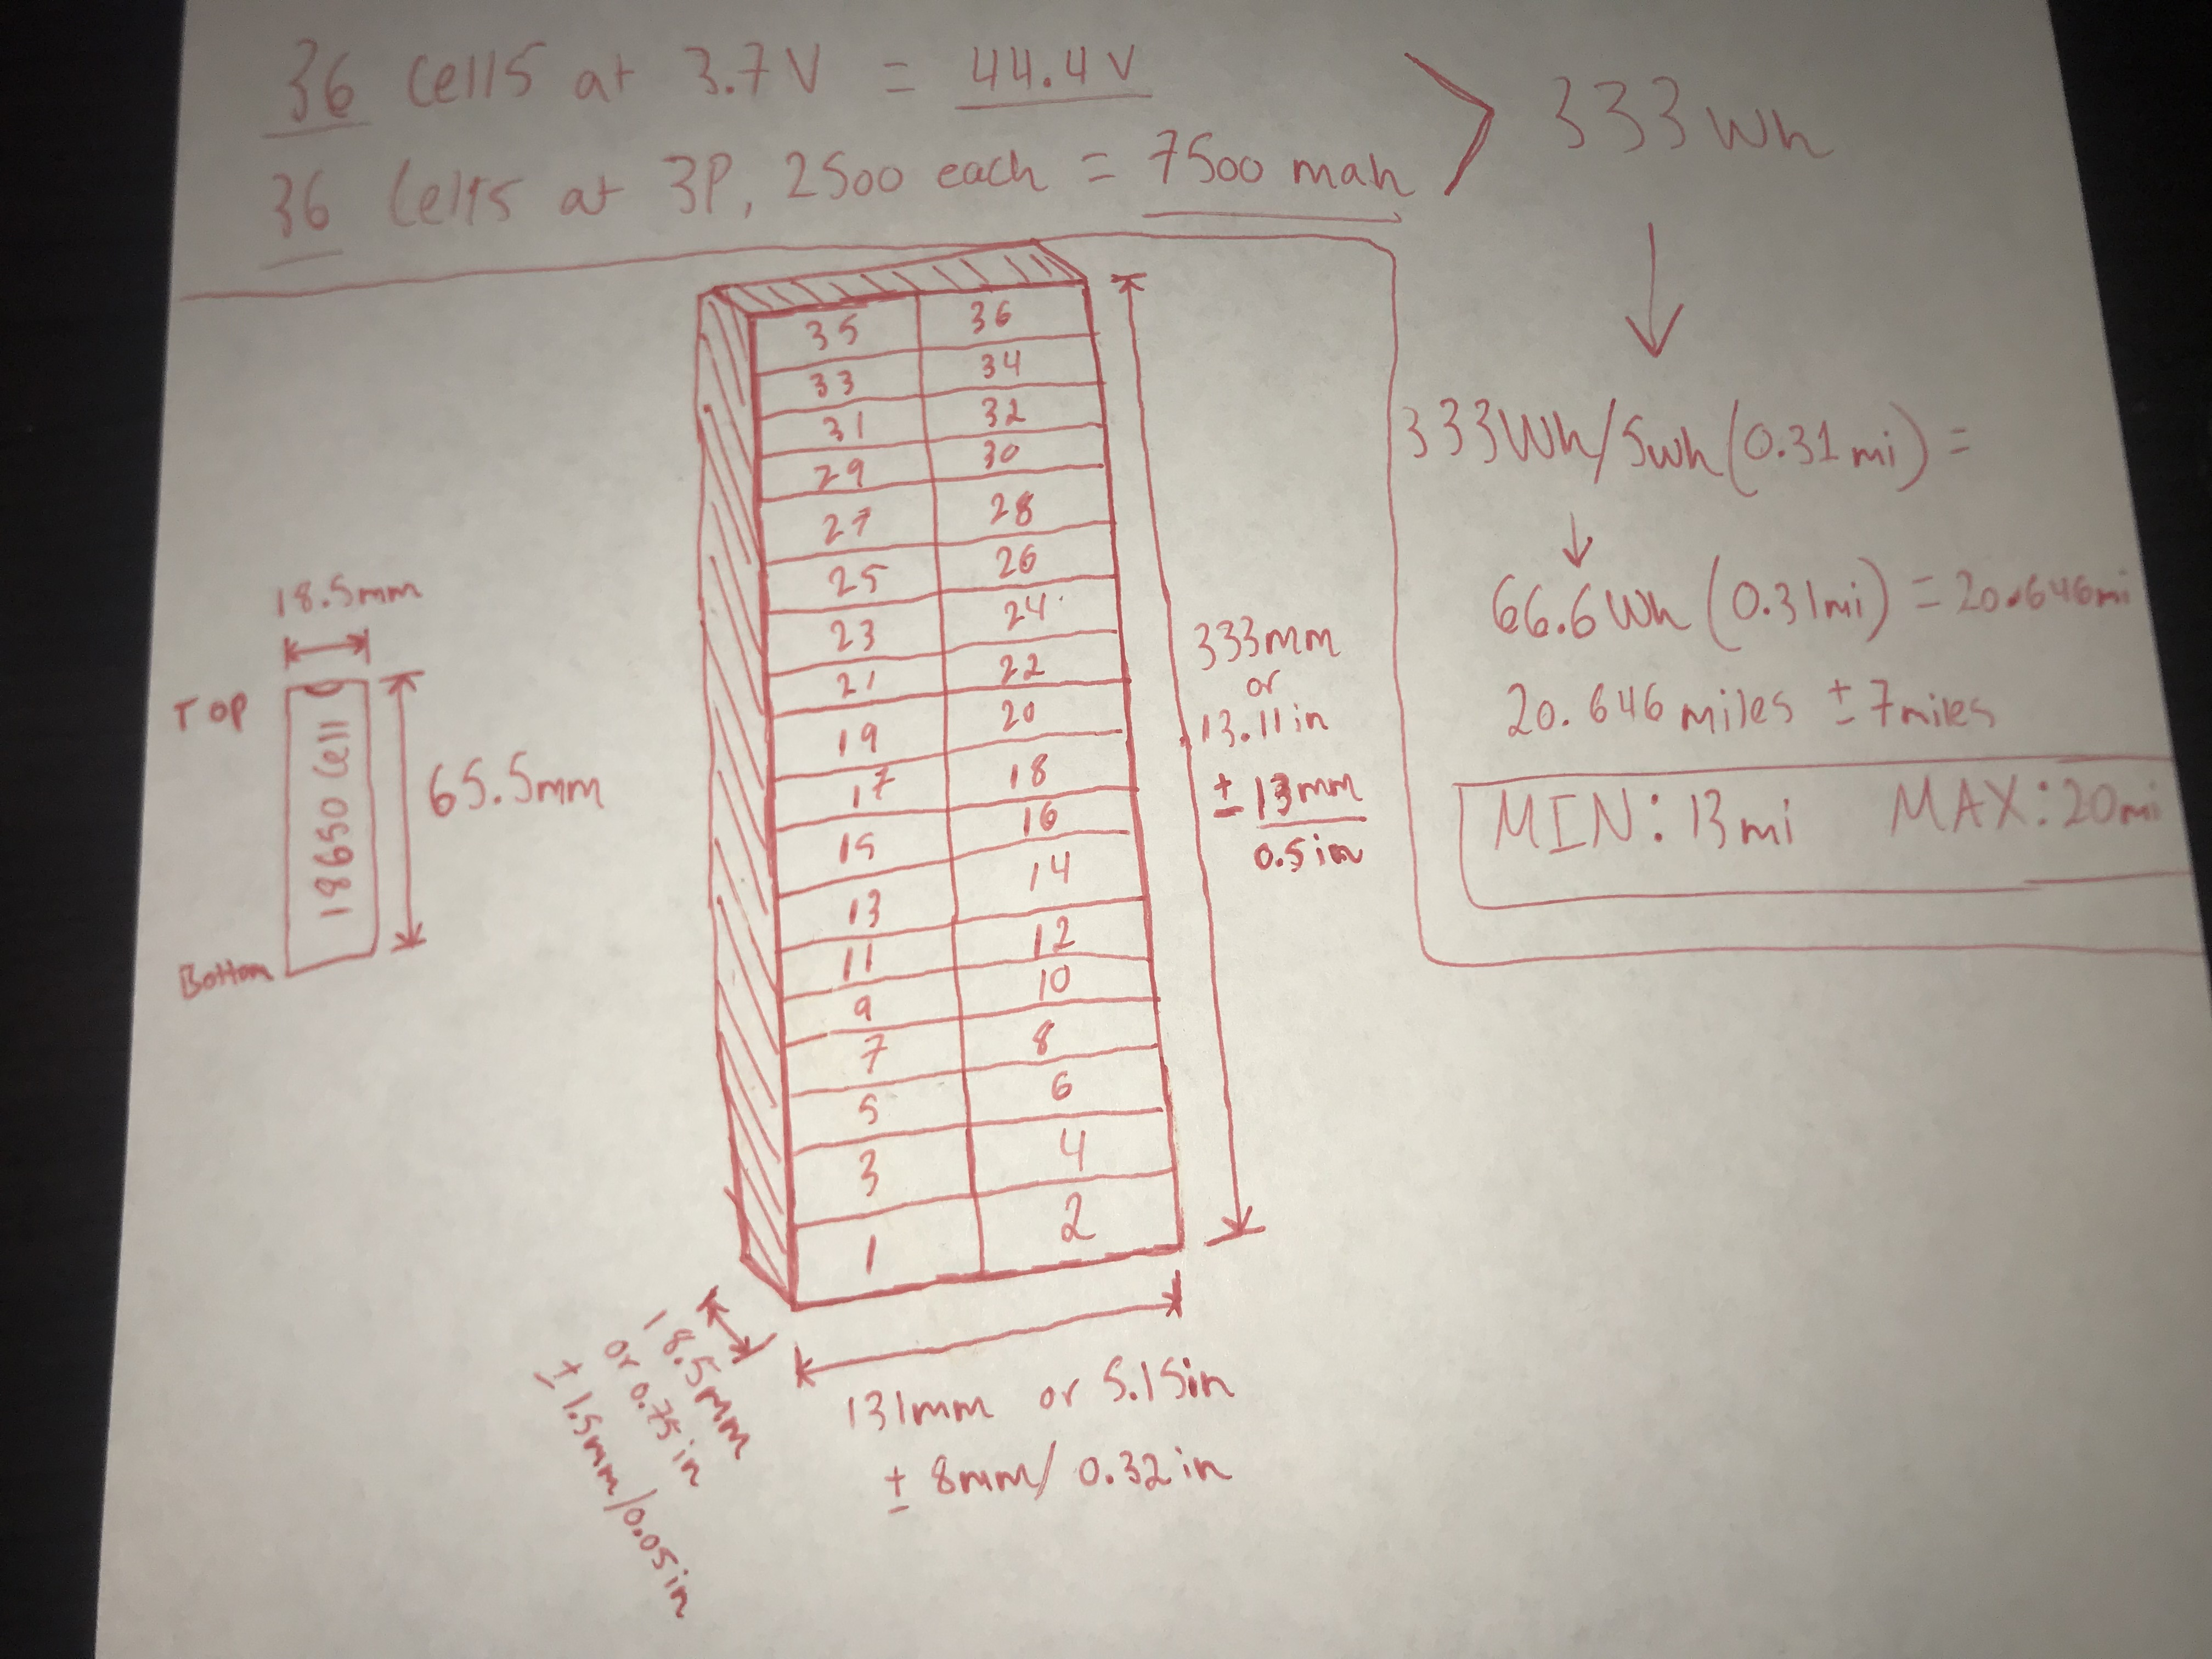 Wiring a 18650 Lithium Ion Battery Pack (12s3p) - ESK8 Electronics -  Electric Skateboard Builders Forum | Learn How to Build your own E-board | Battery Cell Wiring Diagram |  | Electric Skateboard Builders Forum